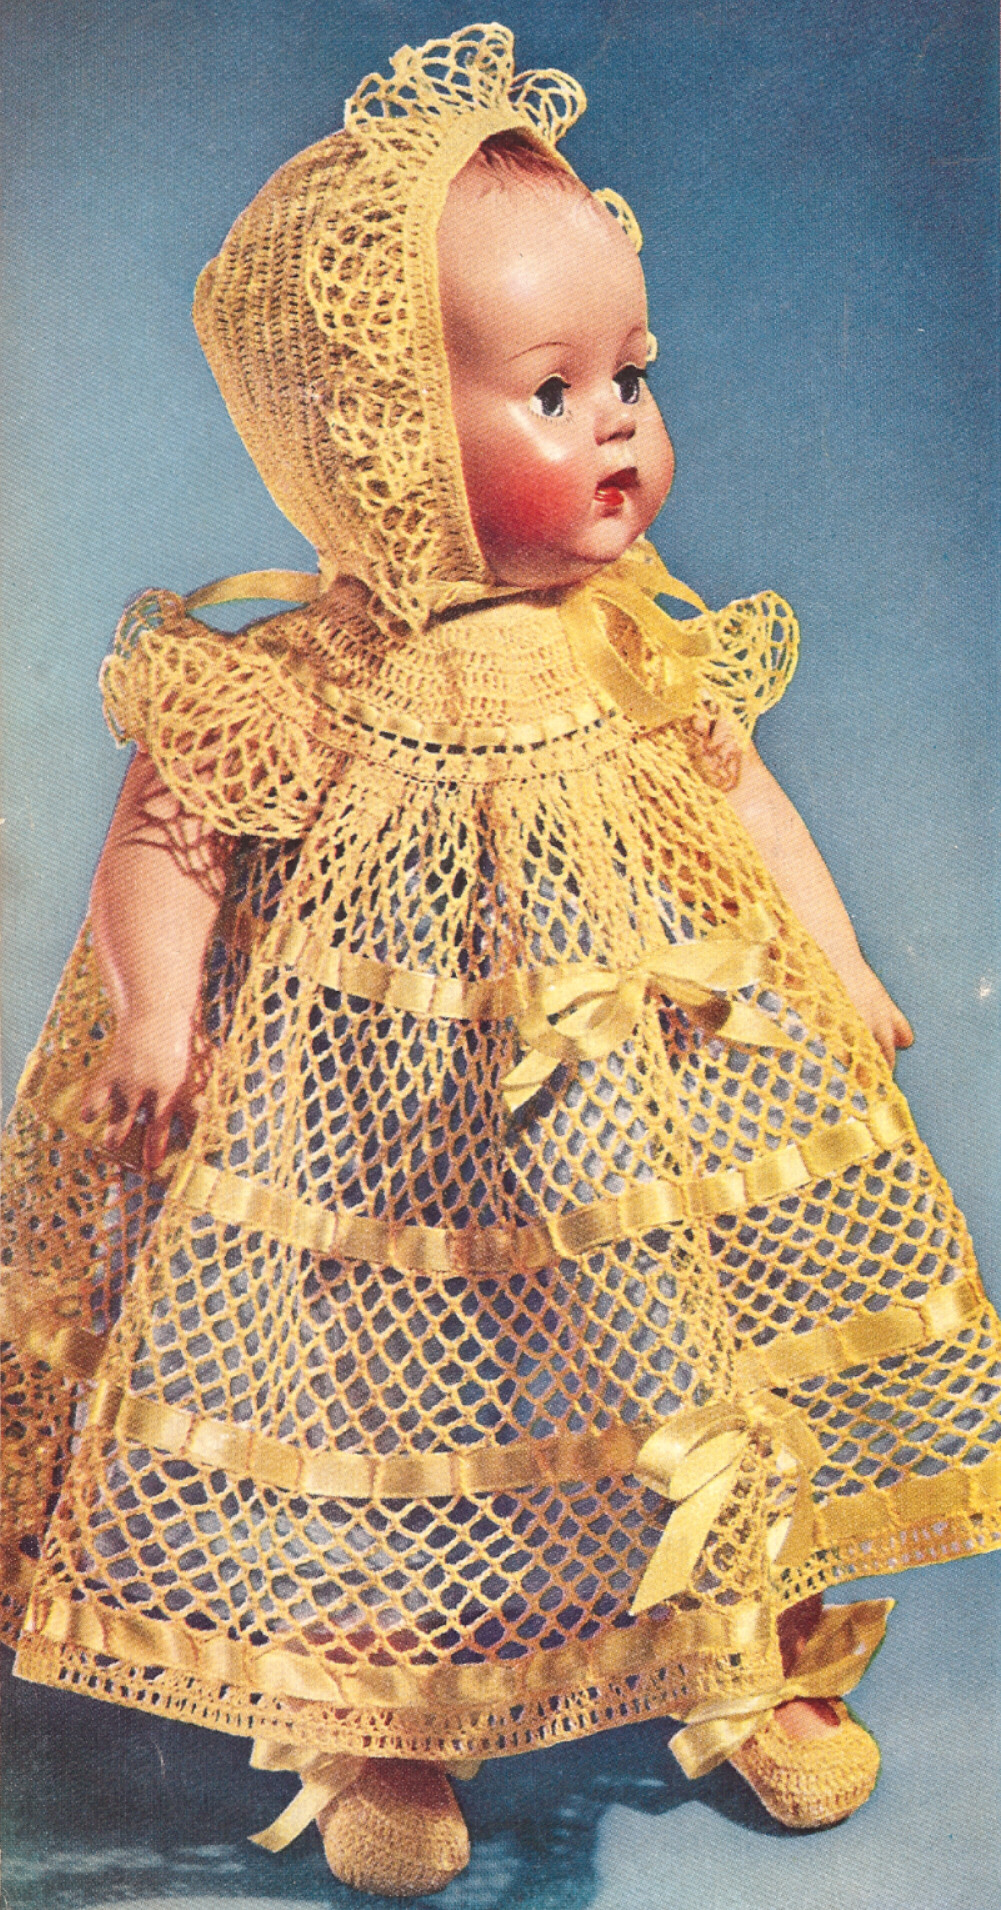 Crochet Baby Dress And Bonnet Pattern : Vintage Crochet Baby Doll Dress Hat Shoes 15in Pattern